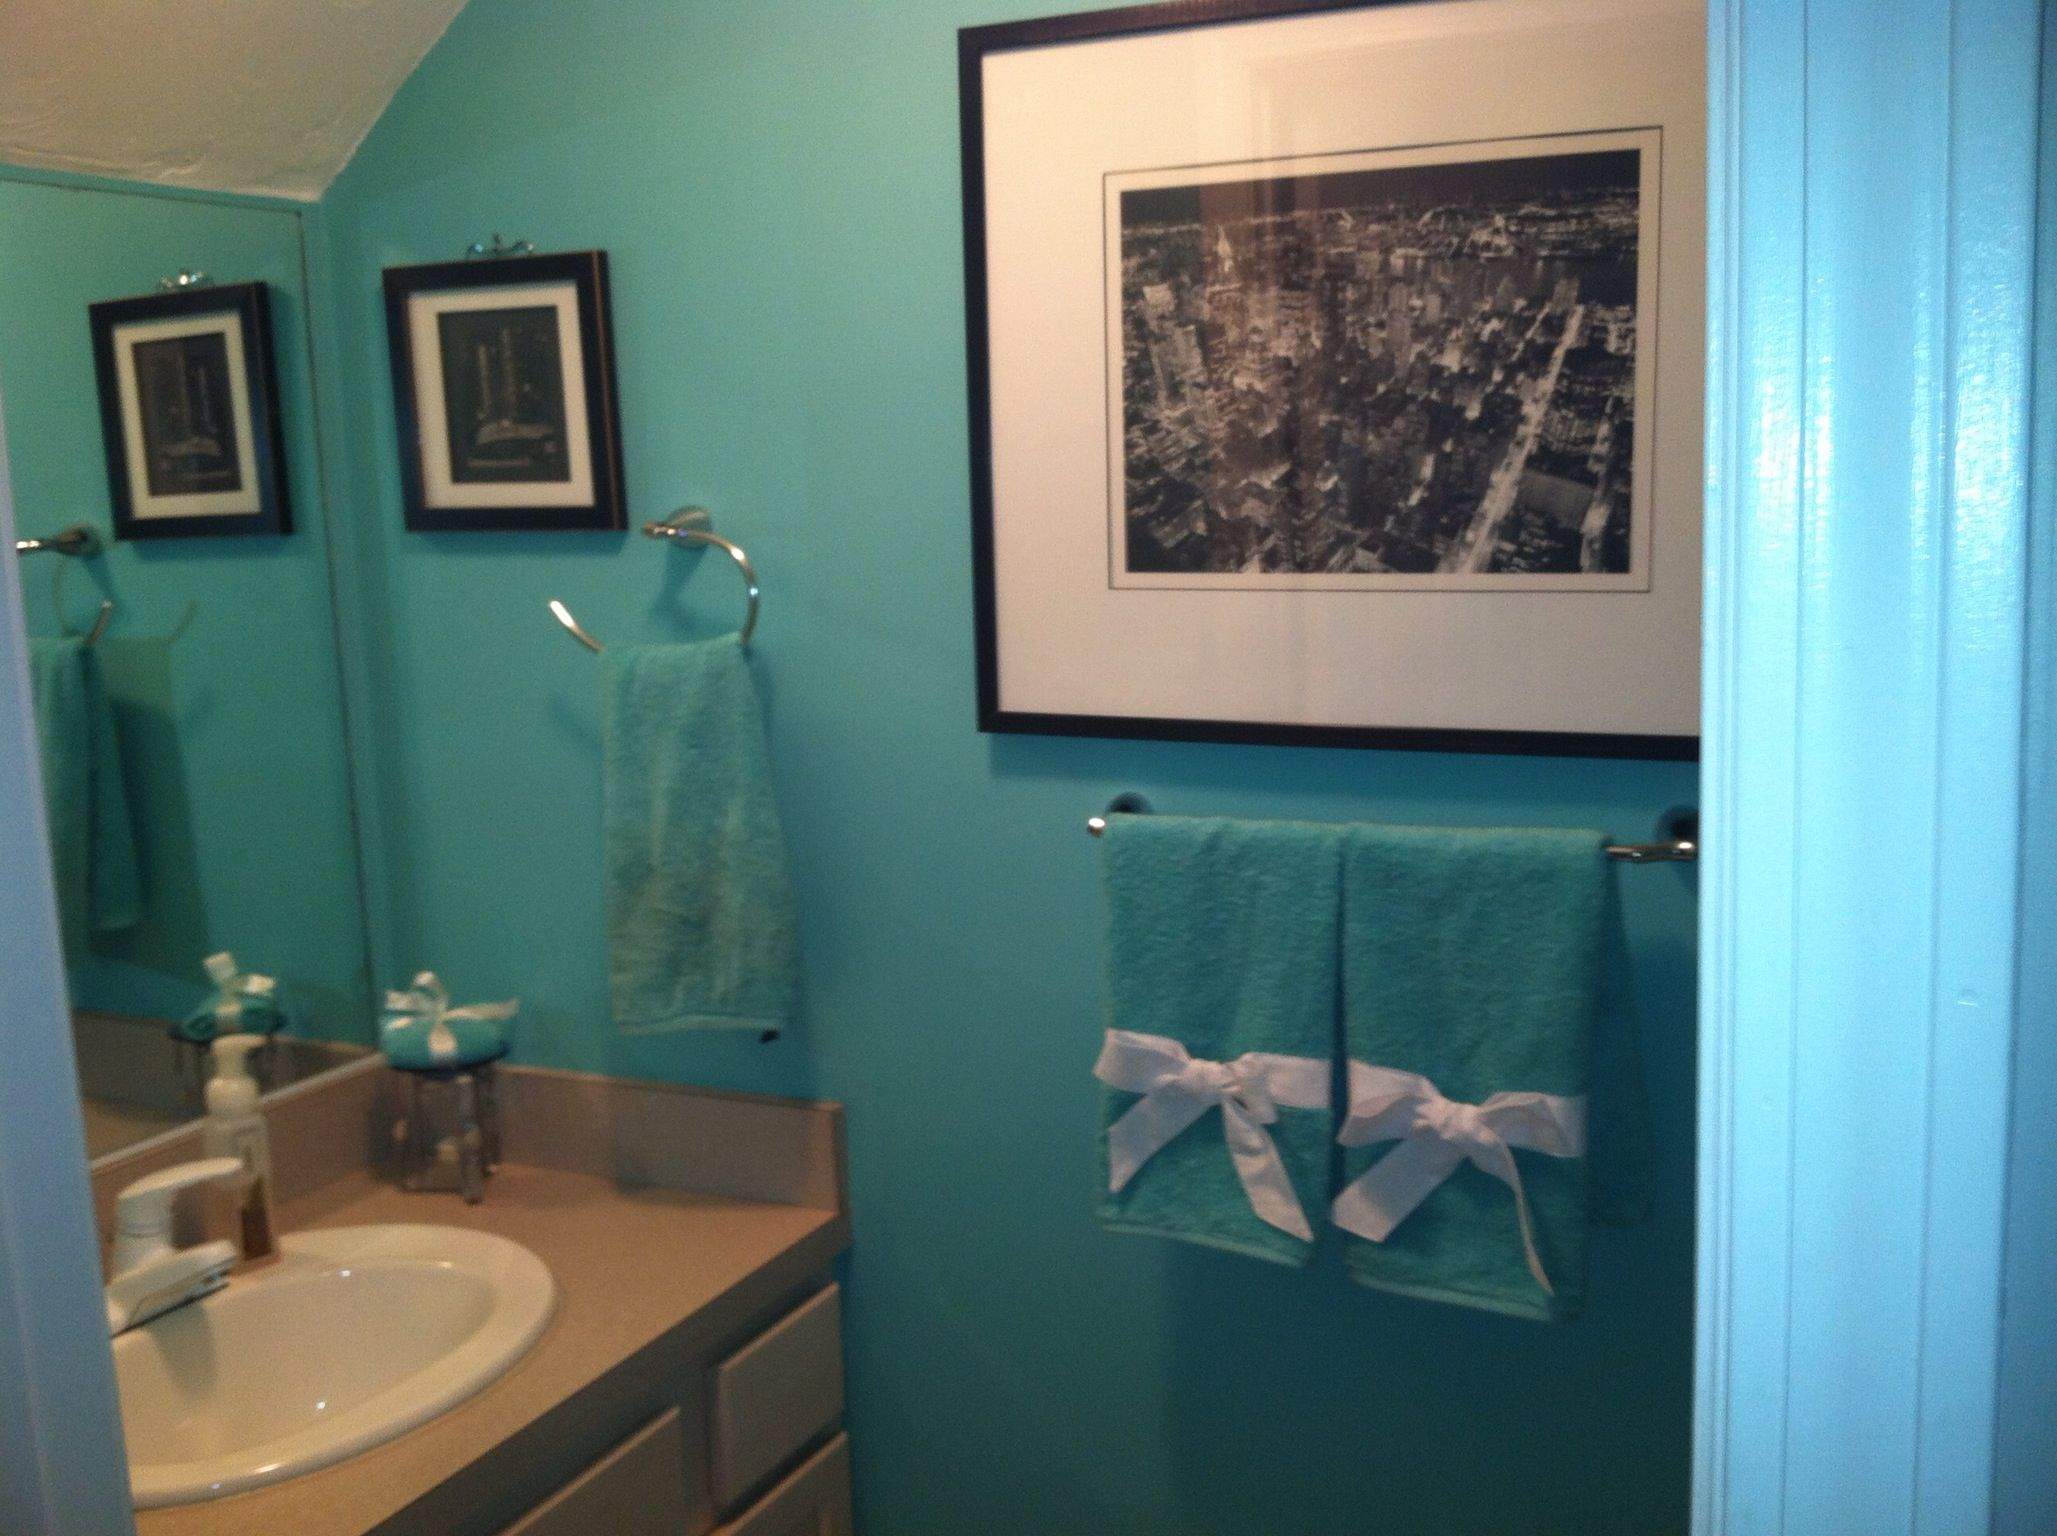 Tiffany blue bathroom designs - Cute Decor Towel Idea For Tiffany Themed Bathroom